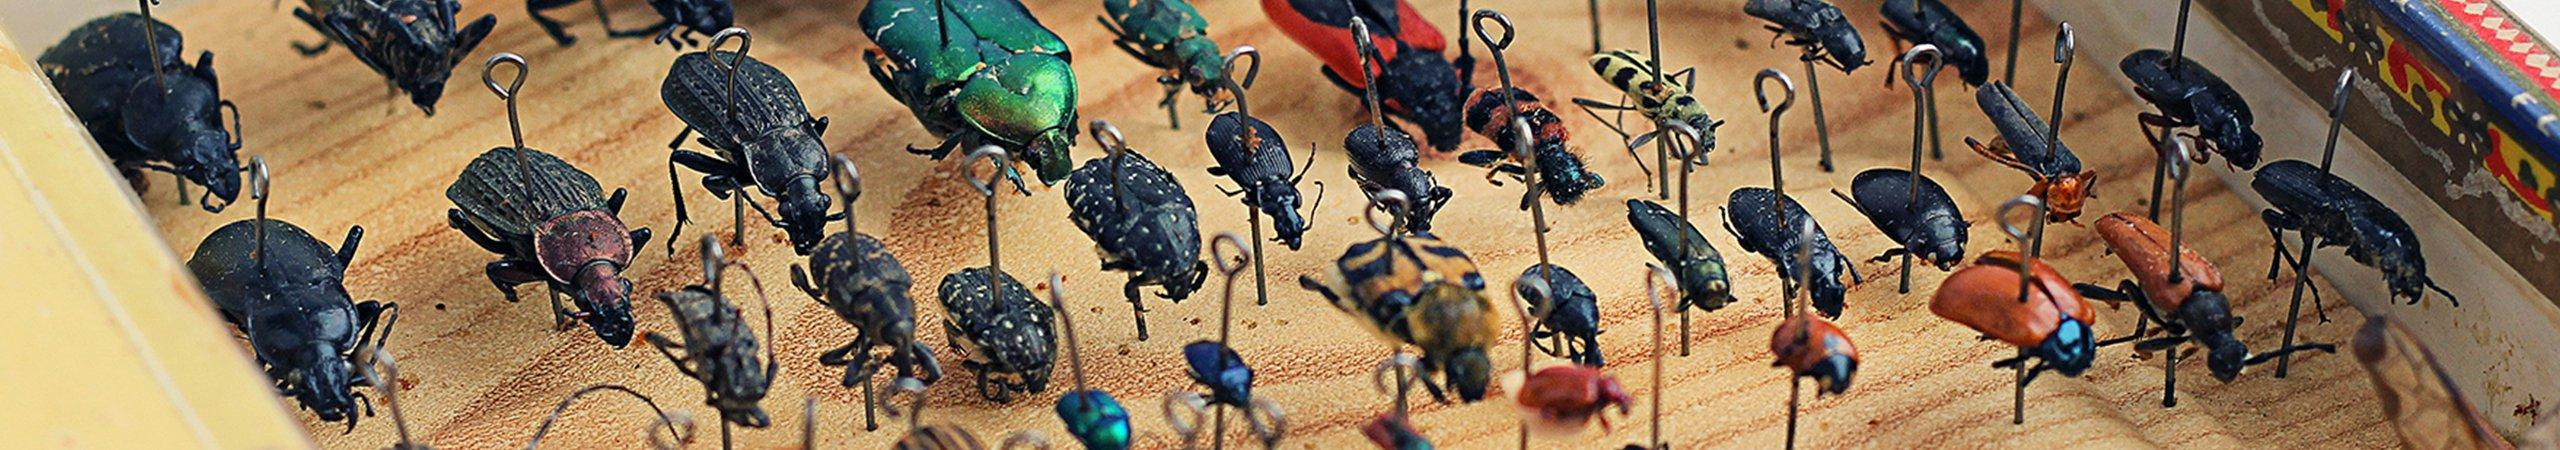 a collection of bugs pinned to a board for science